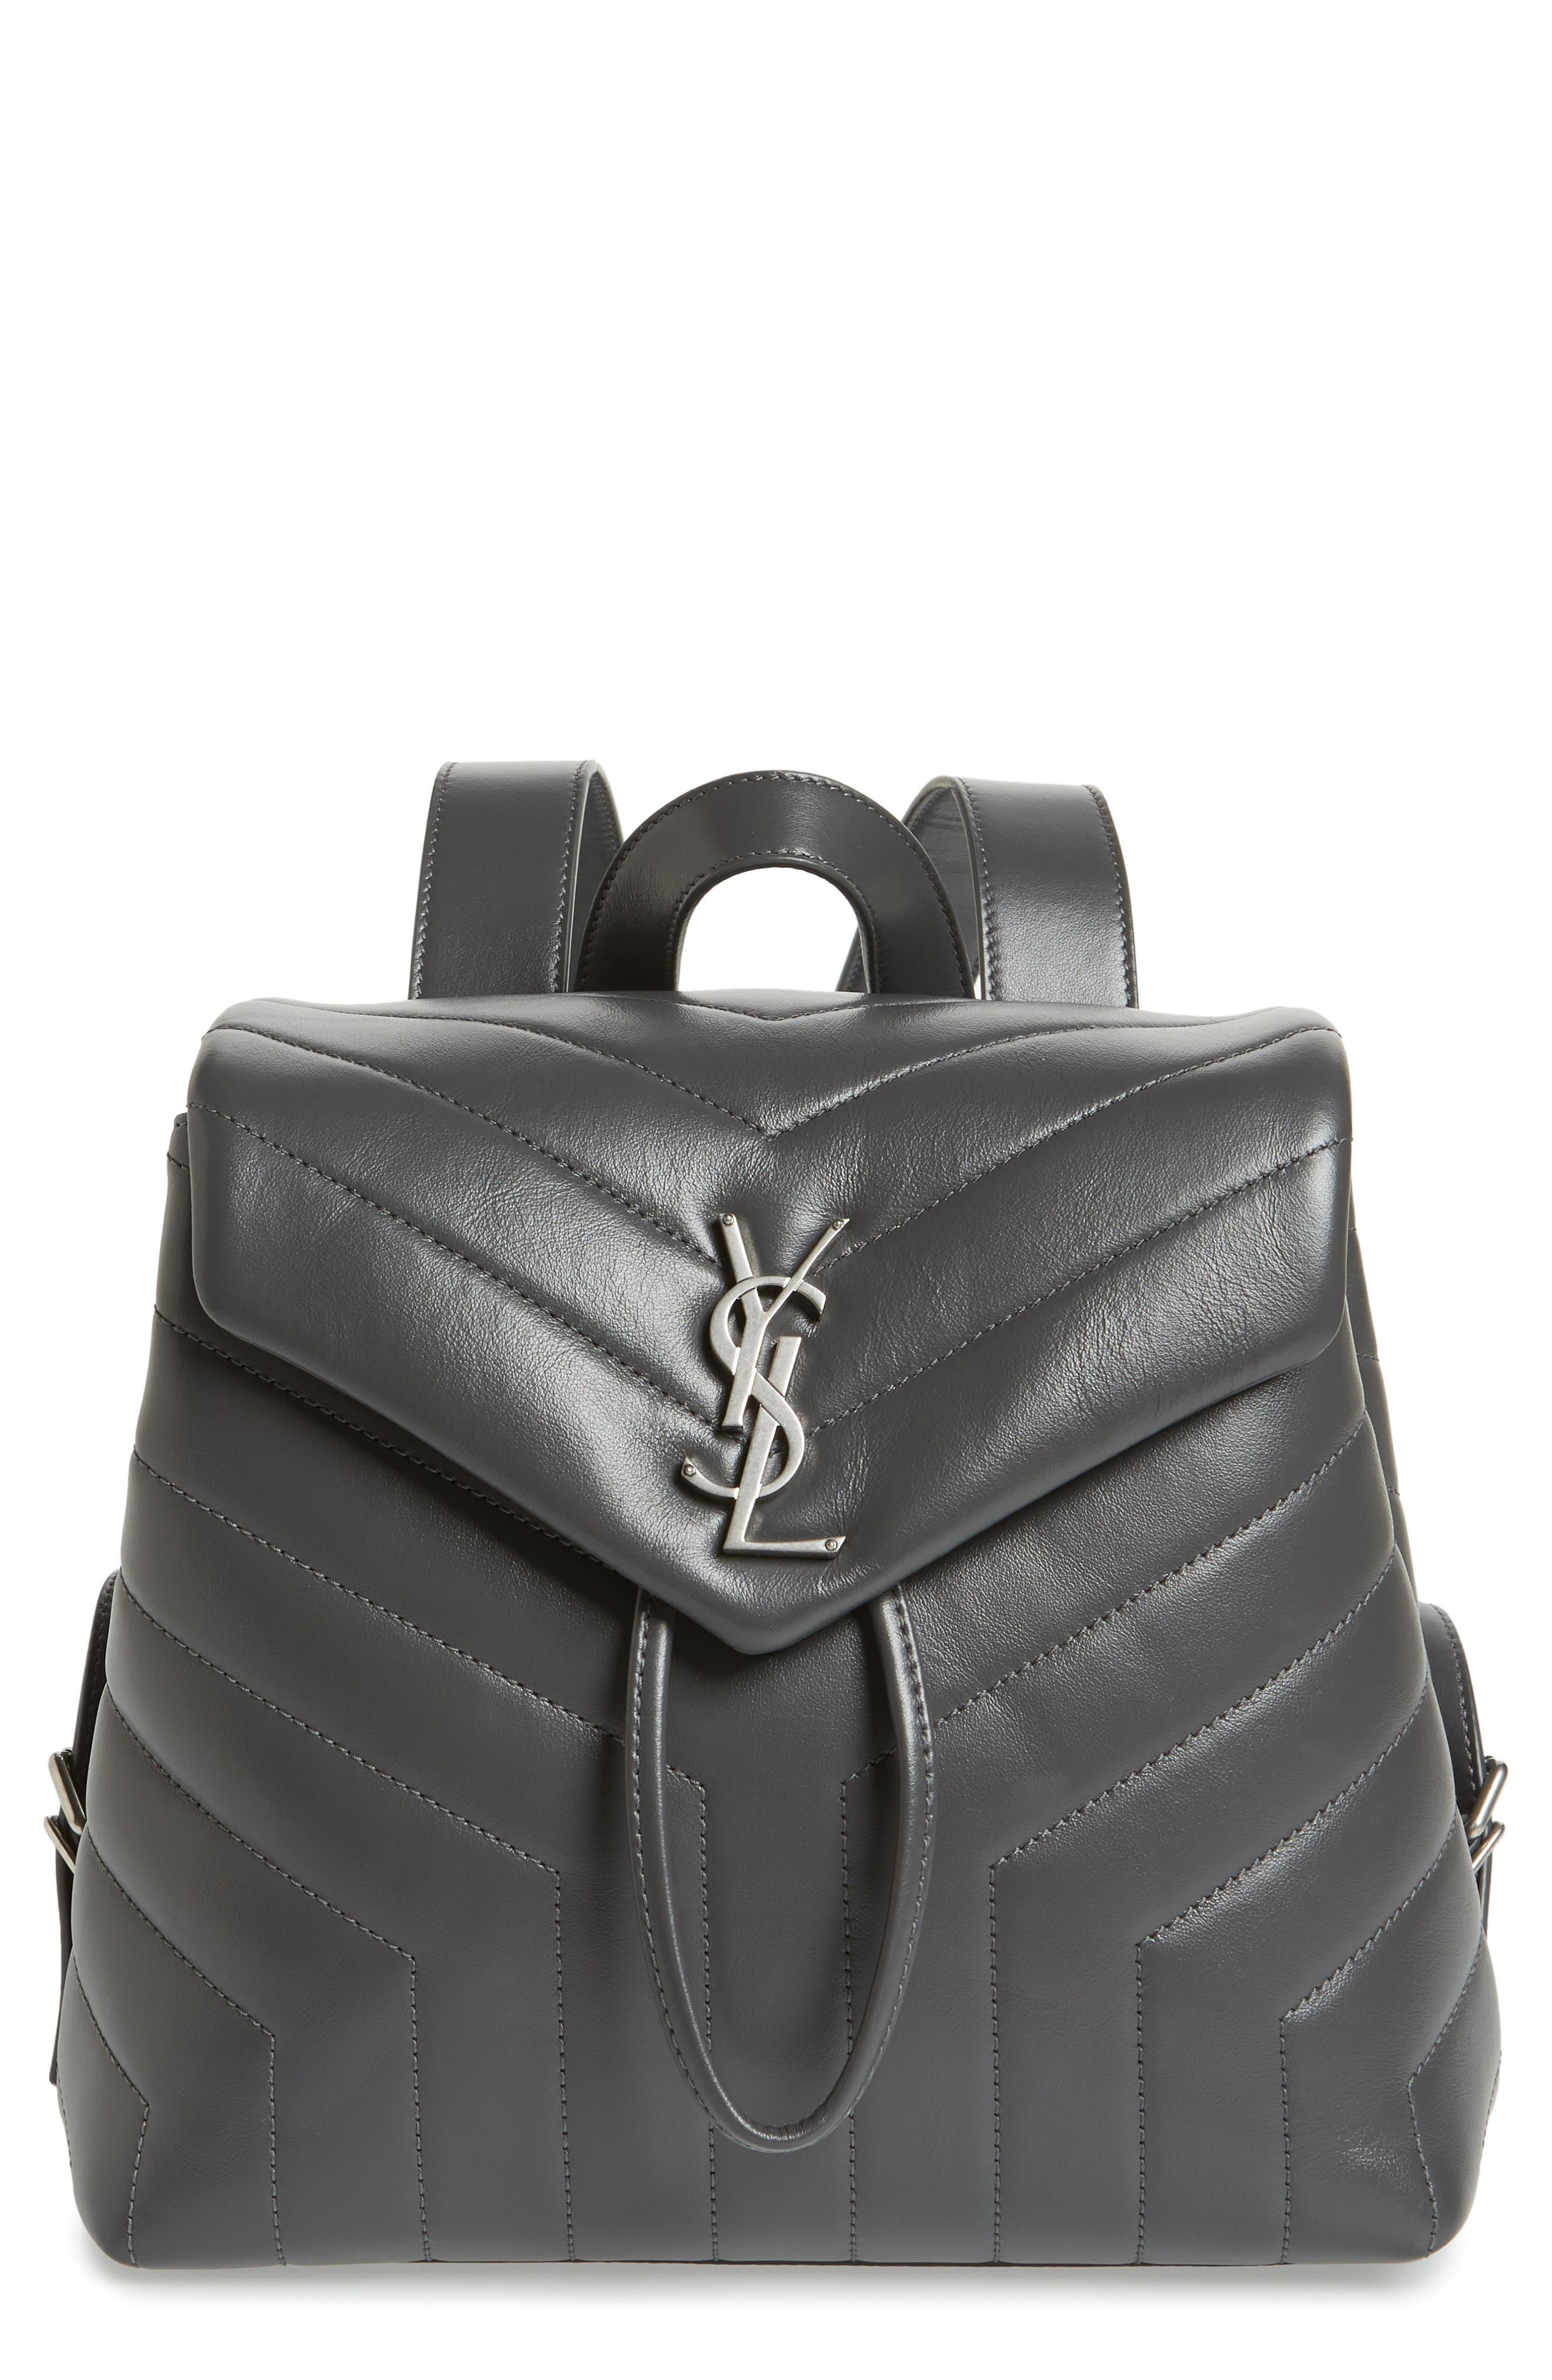 Small Loulou Quilted Calfskin Leather Backpack,                             Main thumbnail 1, color,                             Storm/ Storm